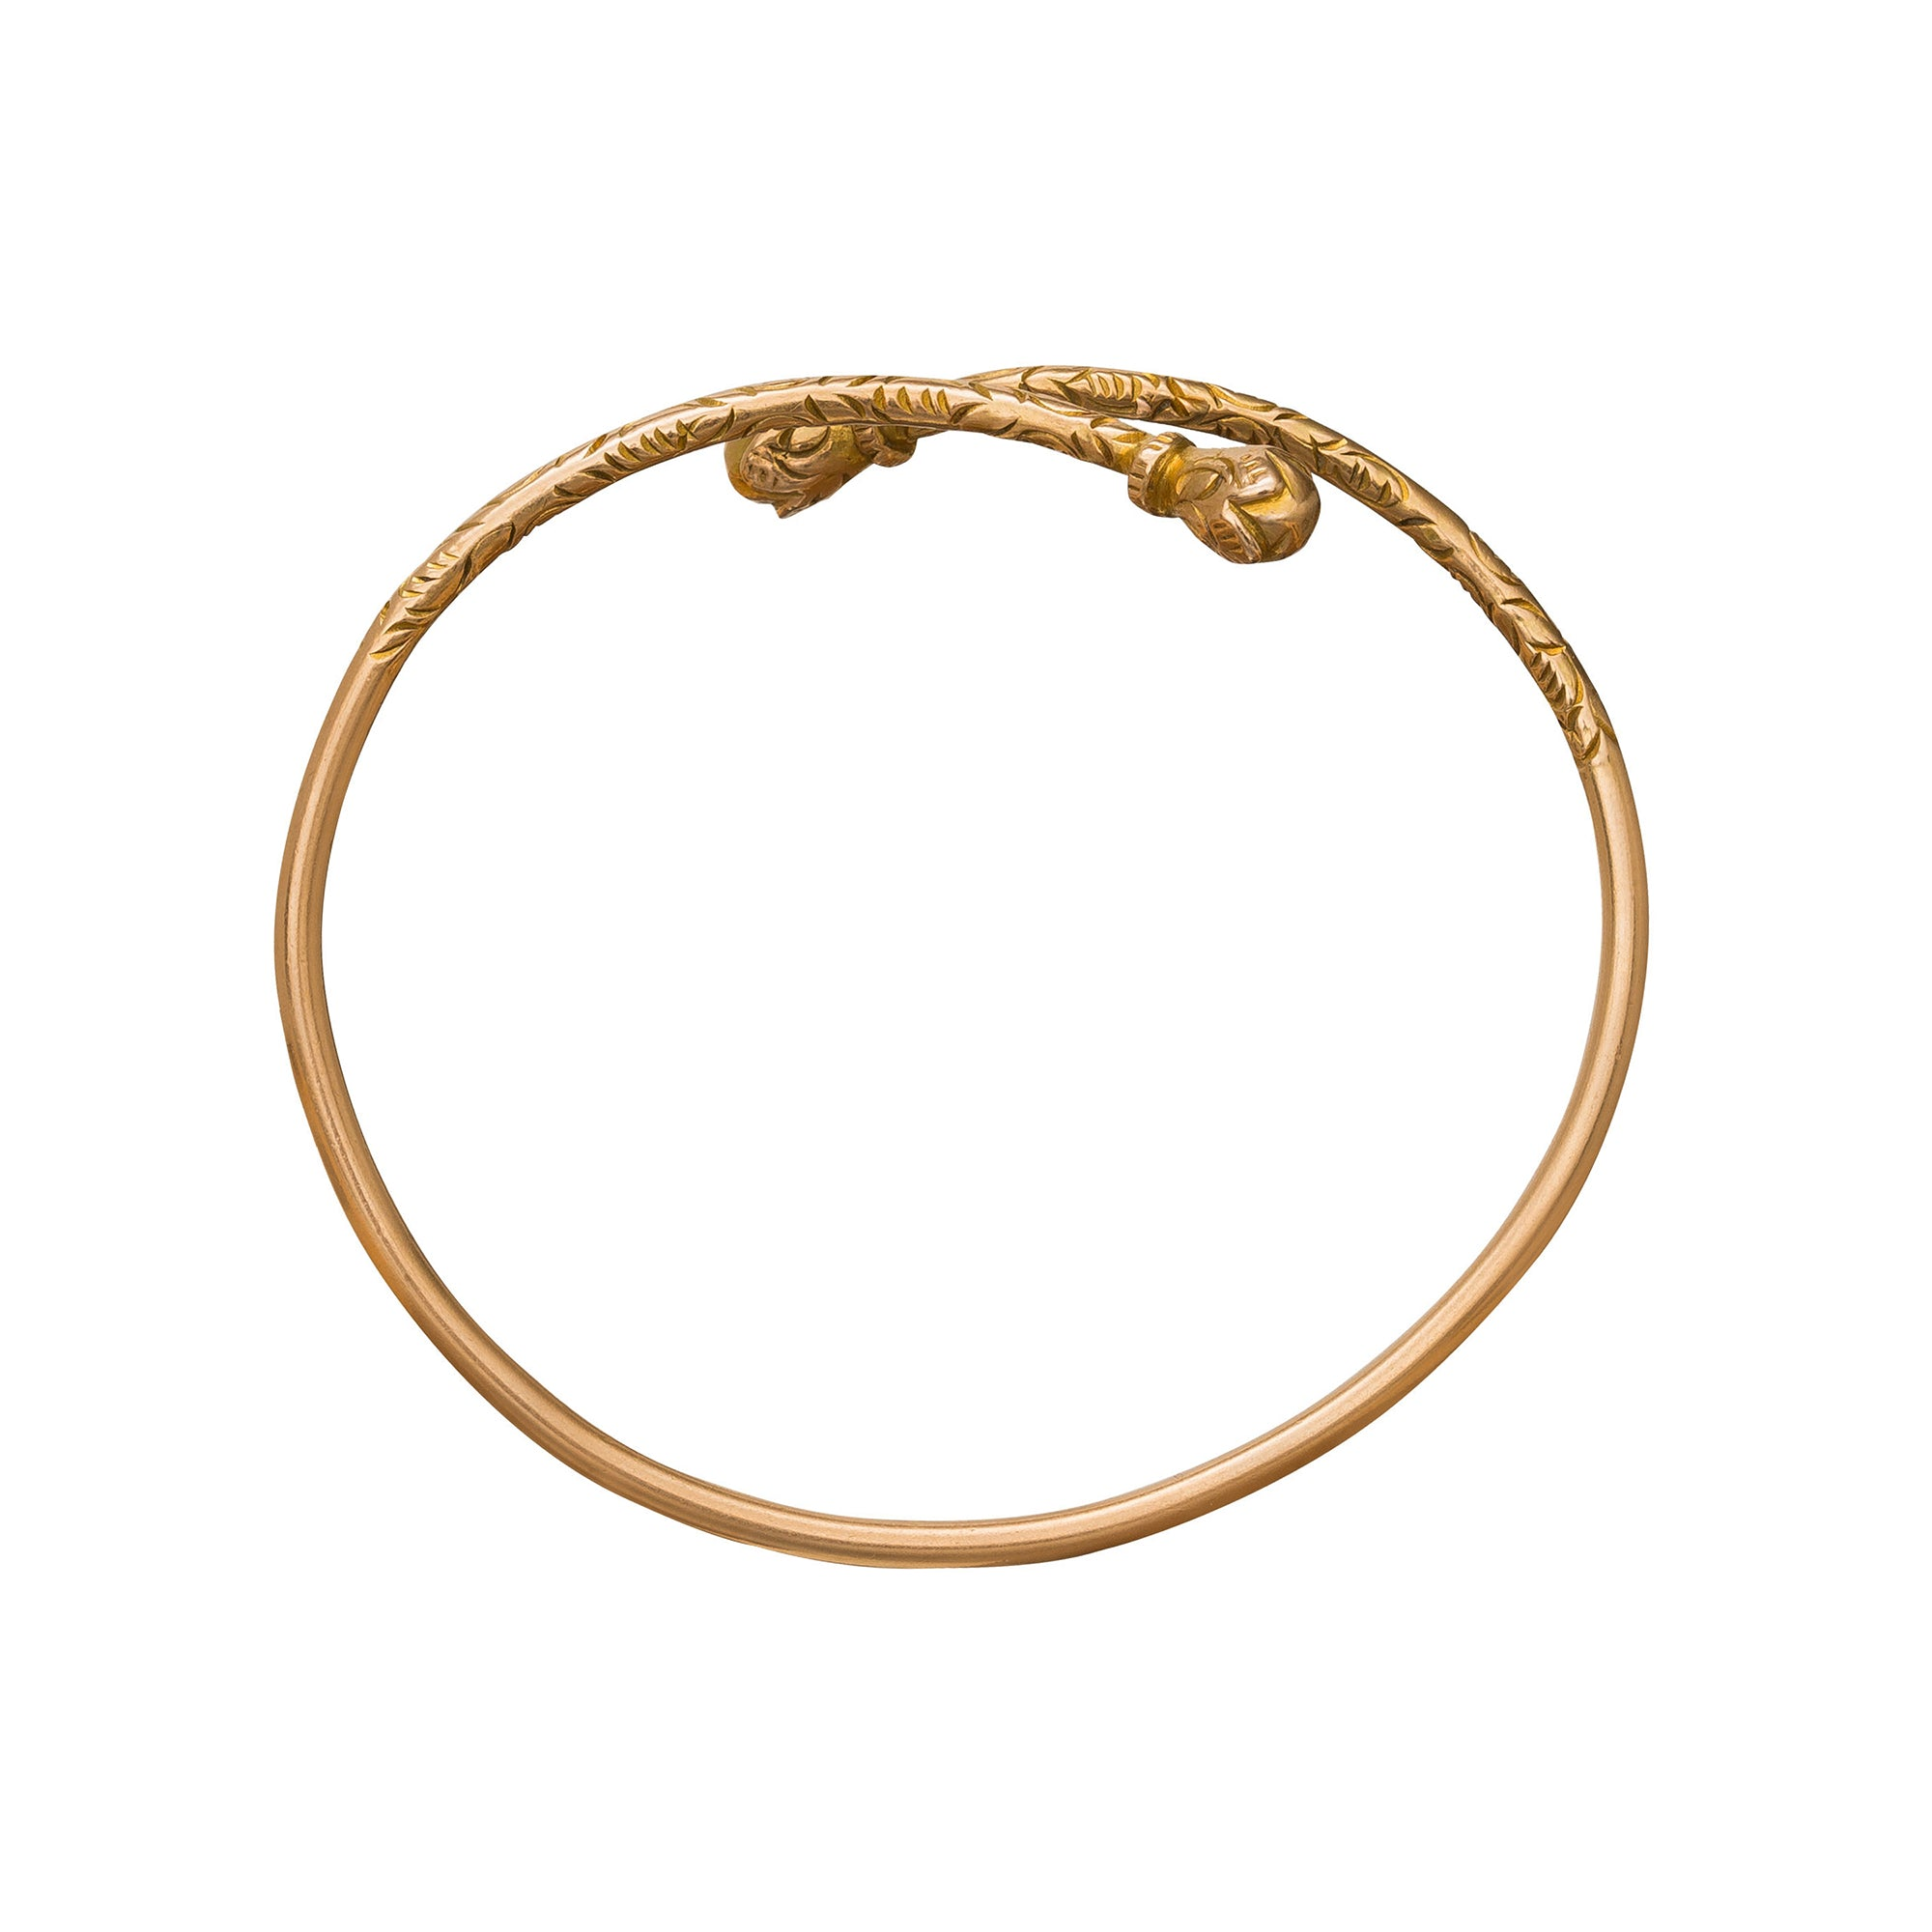 Engraved Bangles - Vintage Jewelry - Bracelets | Broken English Jewelry